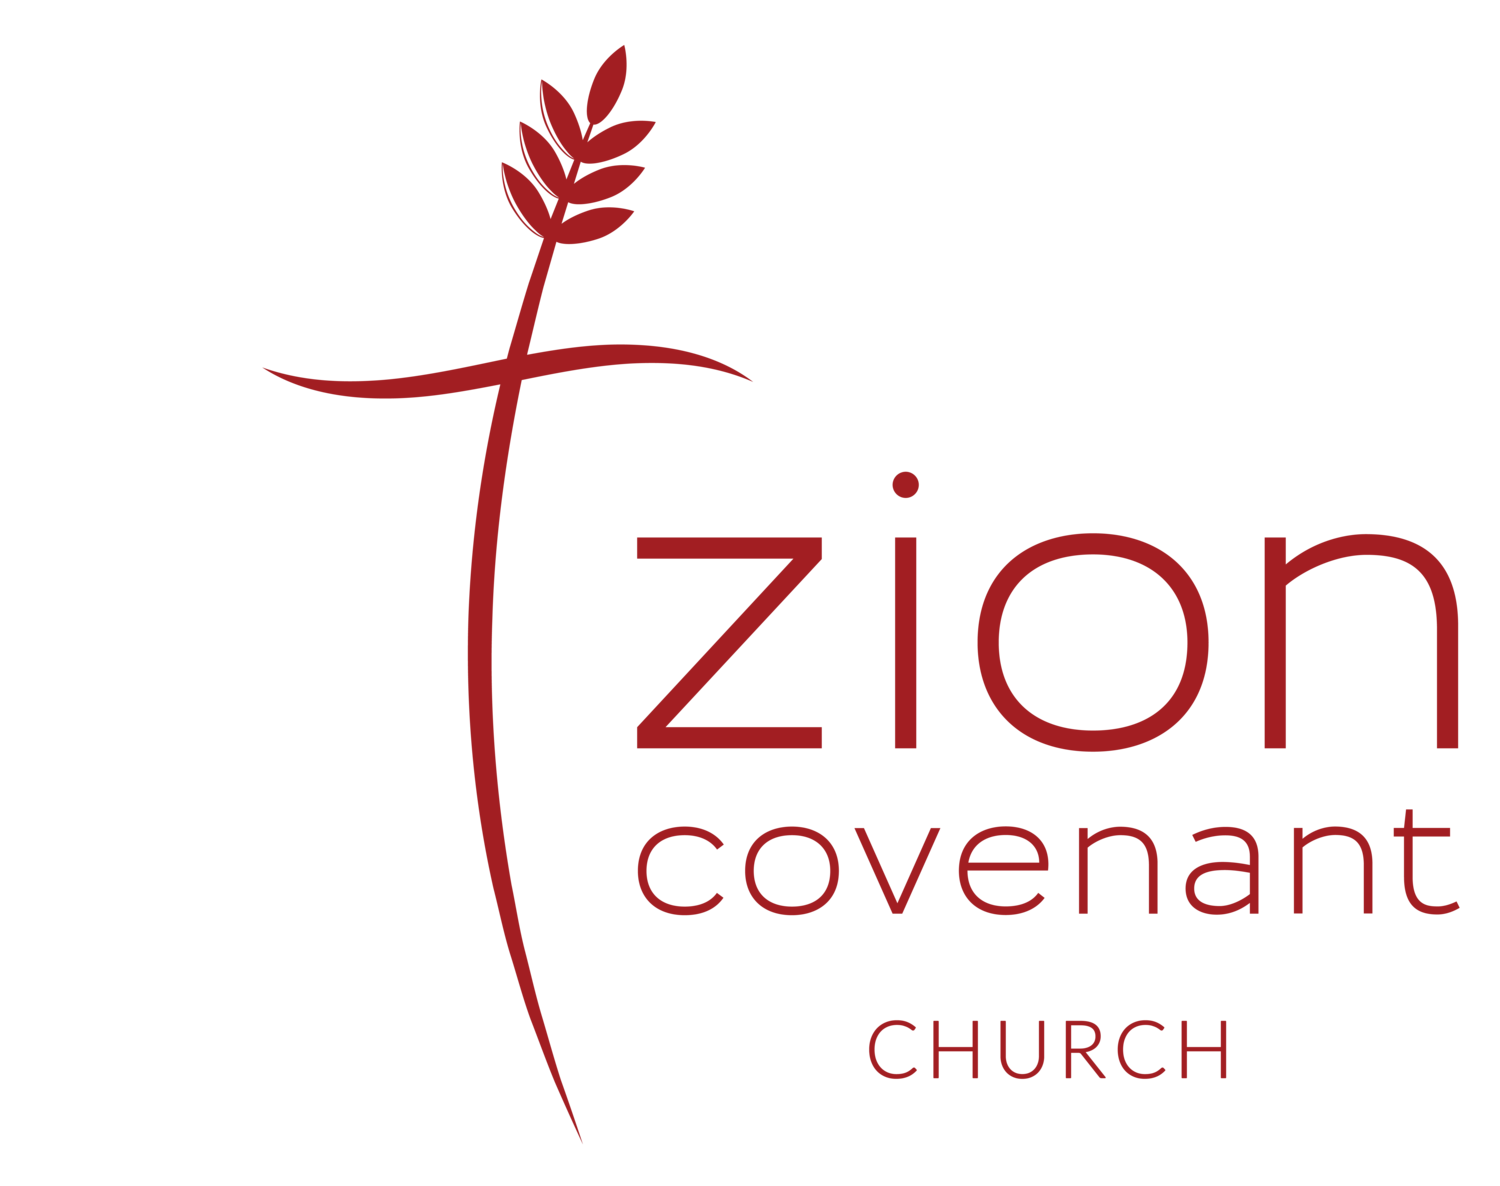 Zion Covenant